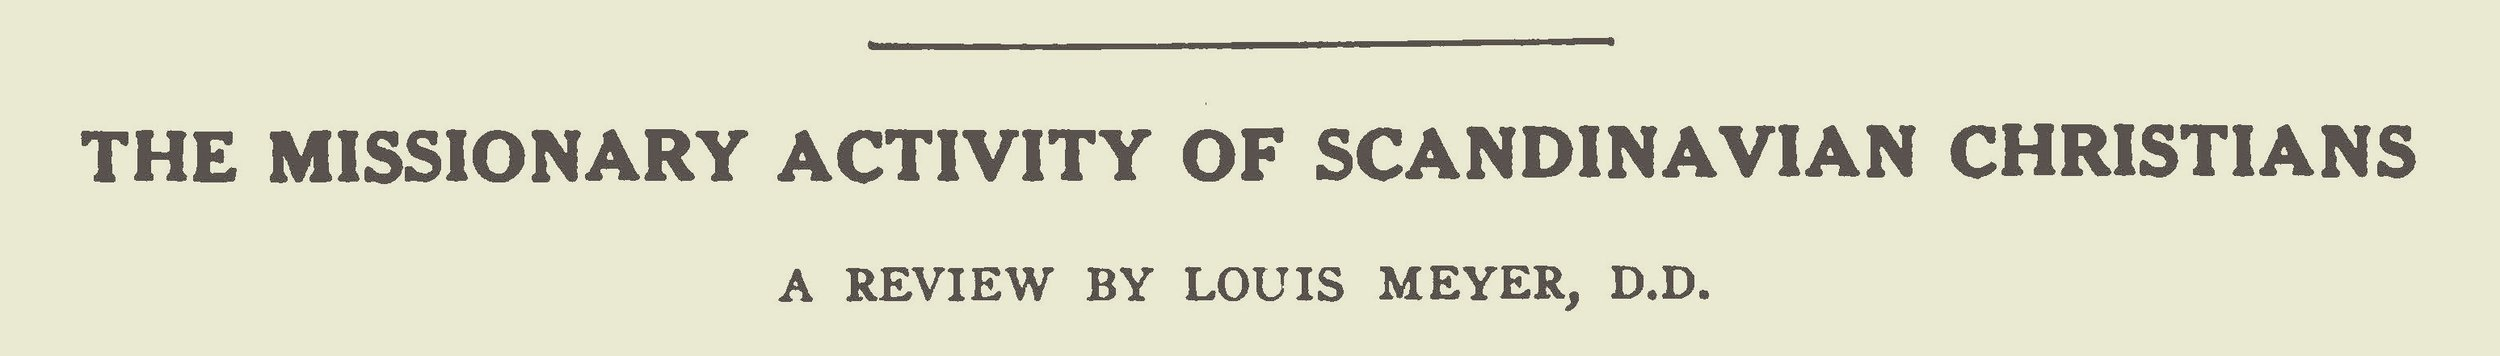 Meyer, Louis, The Missionary Activity of Scandinavian Christians Title Page.jpg